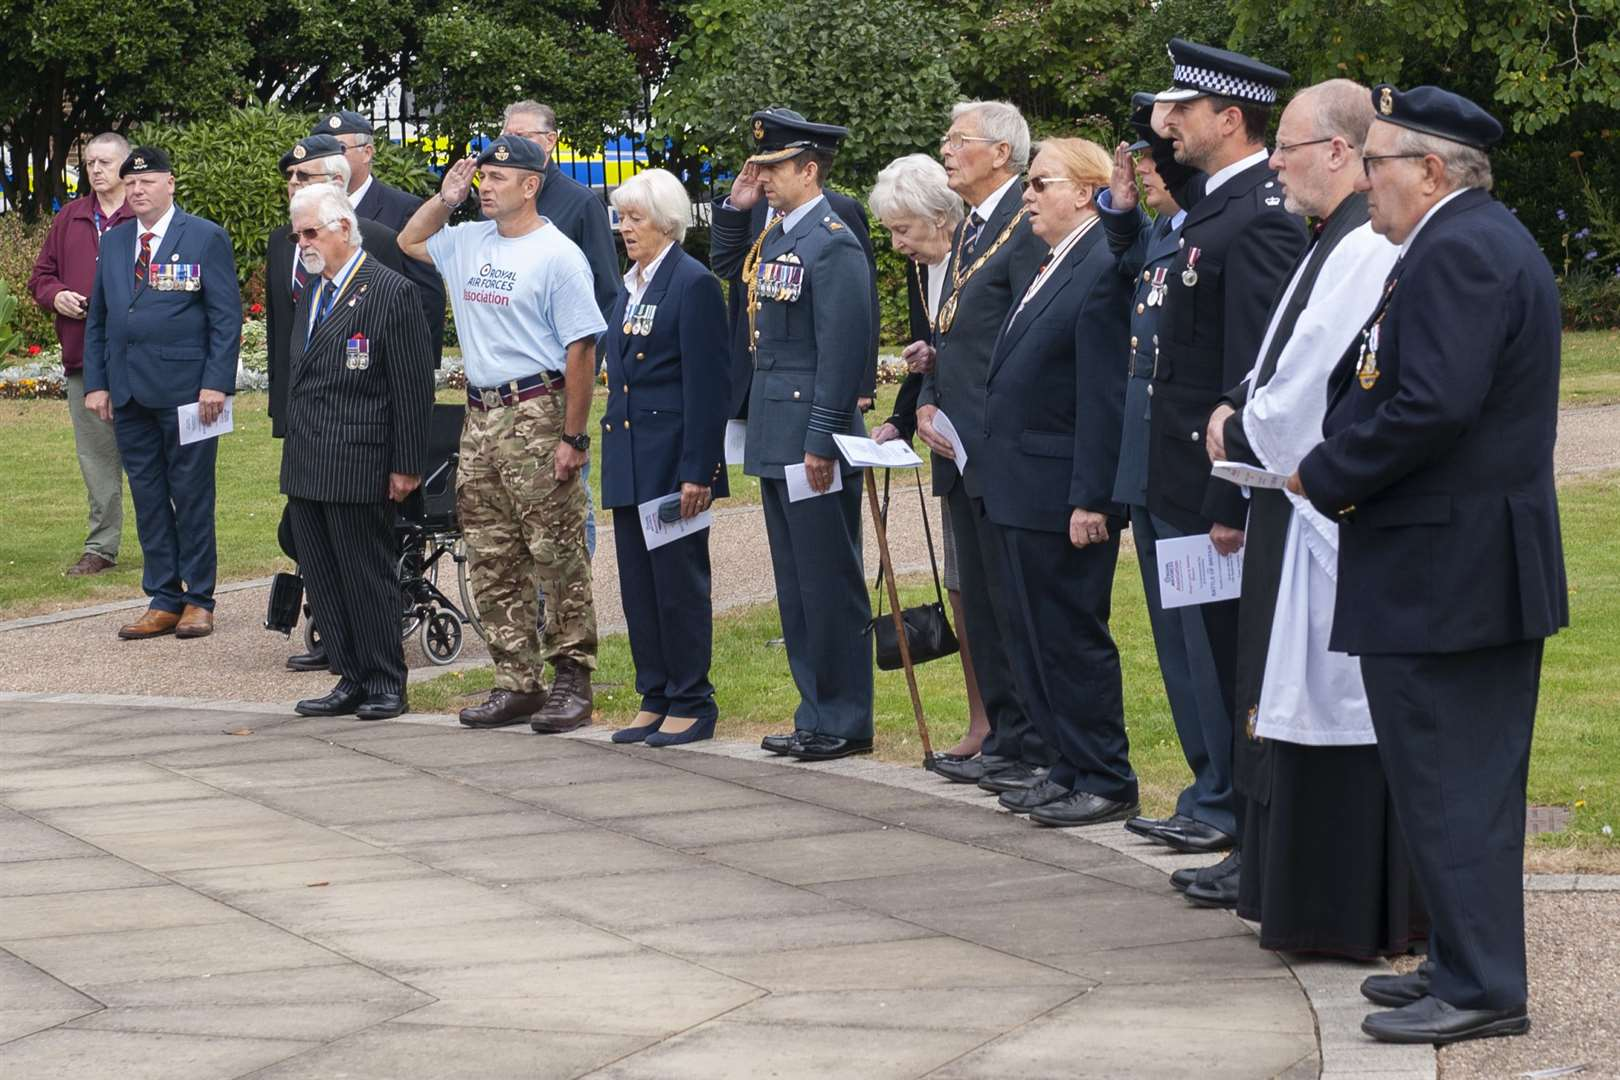 Royal Air Forces Association 81st Anniversary of the Battle Of Britain Service of Commemoration. at Tower Gardens King's Lynn.. (51174914)